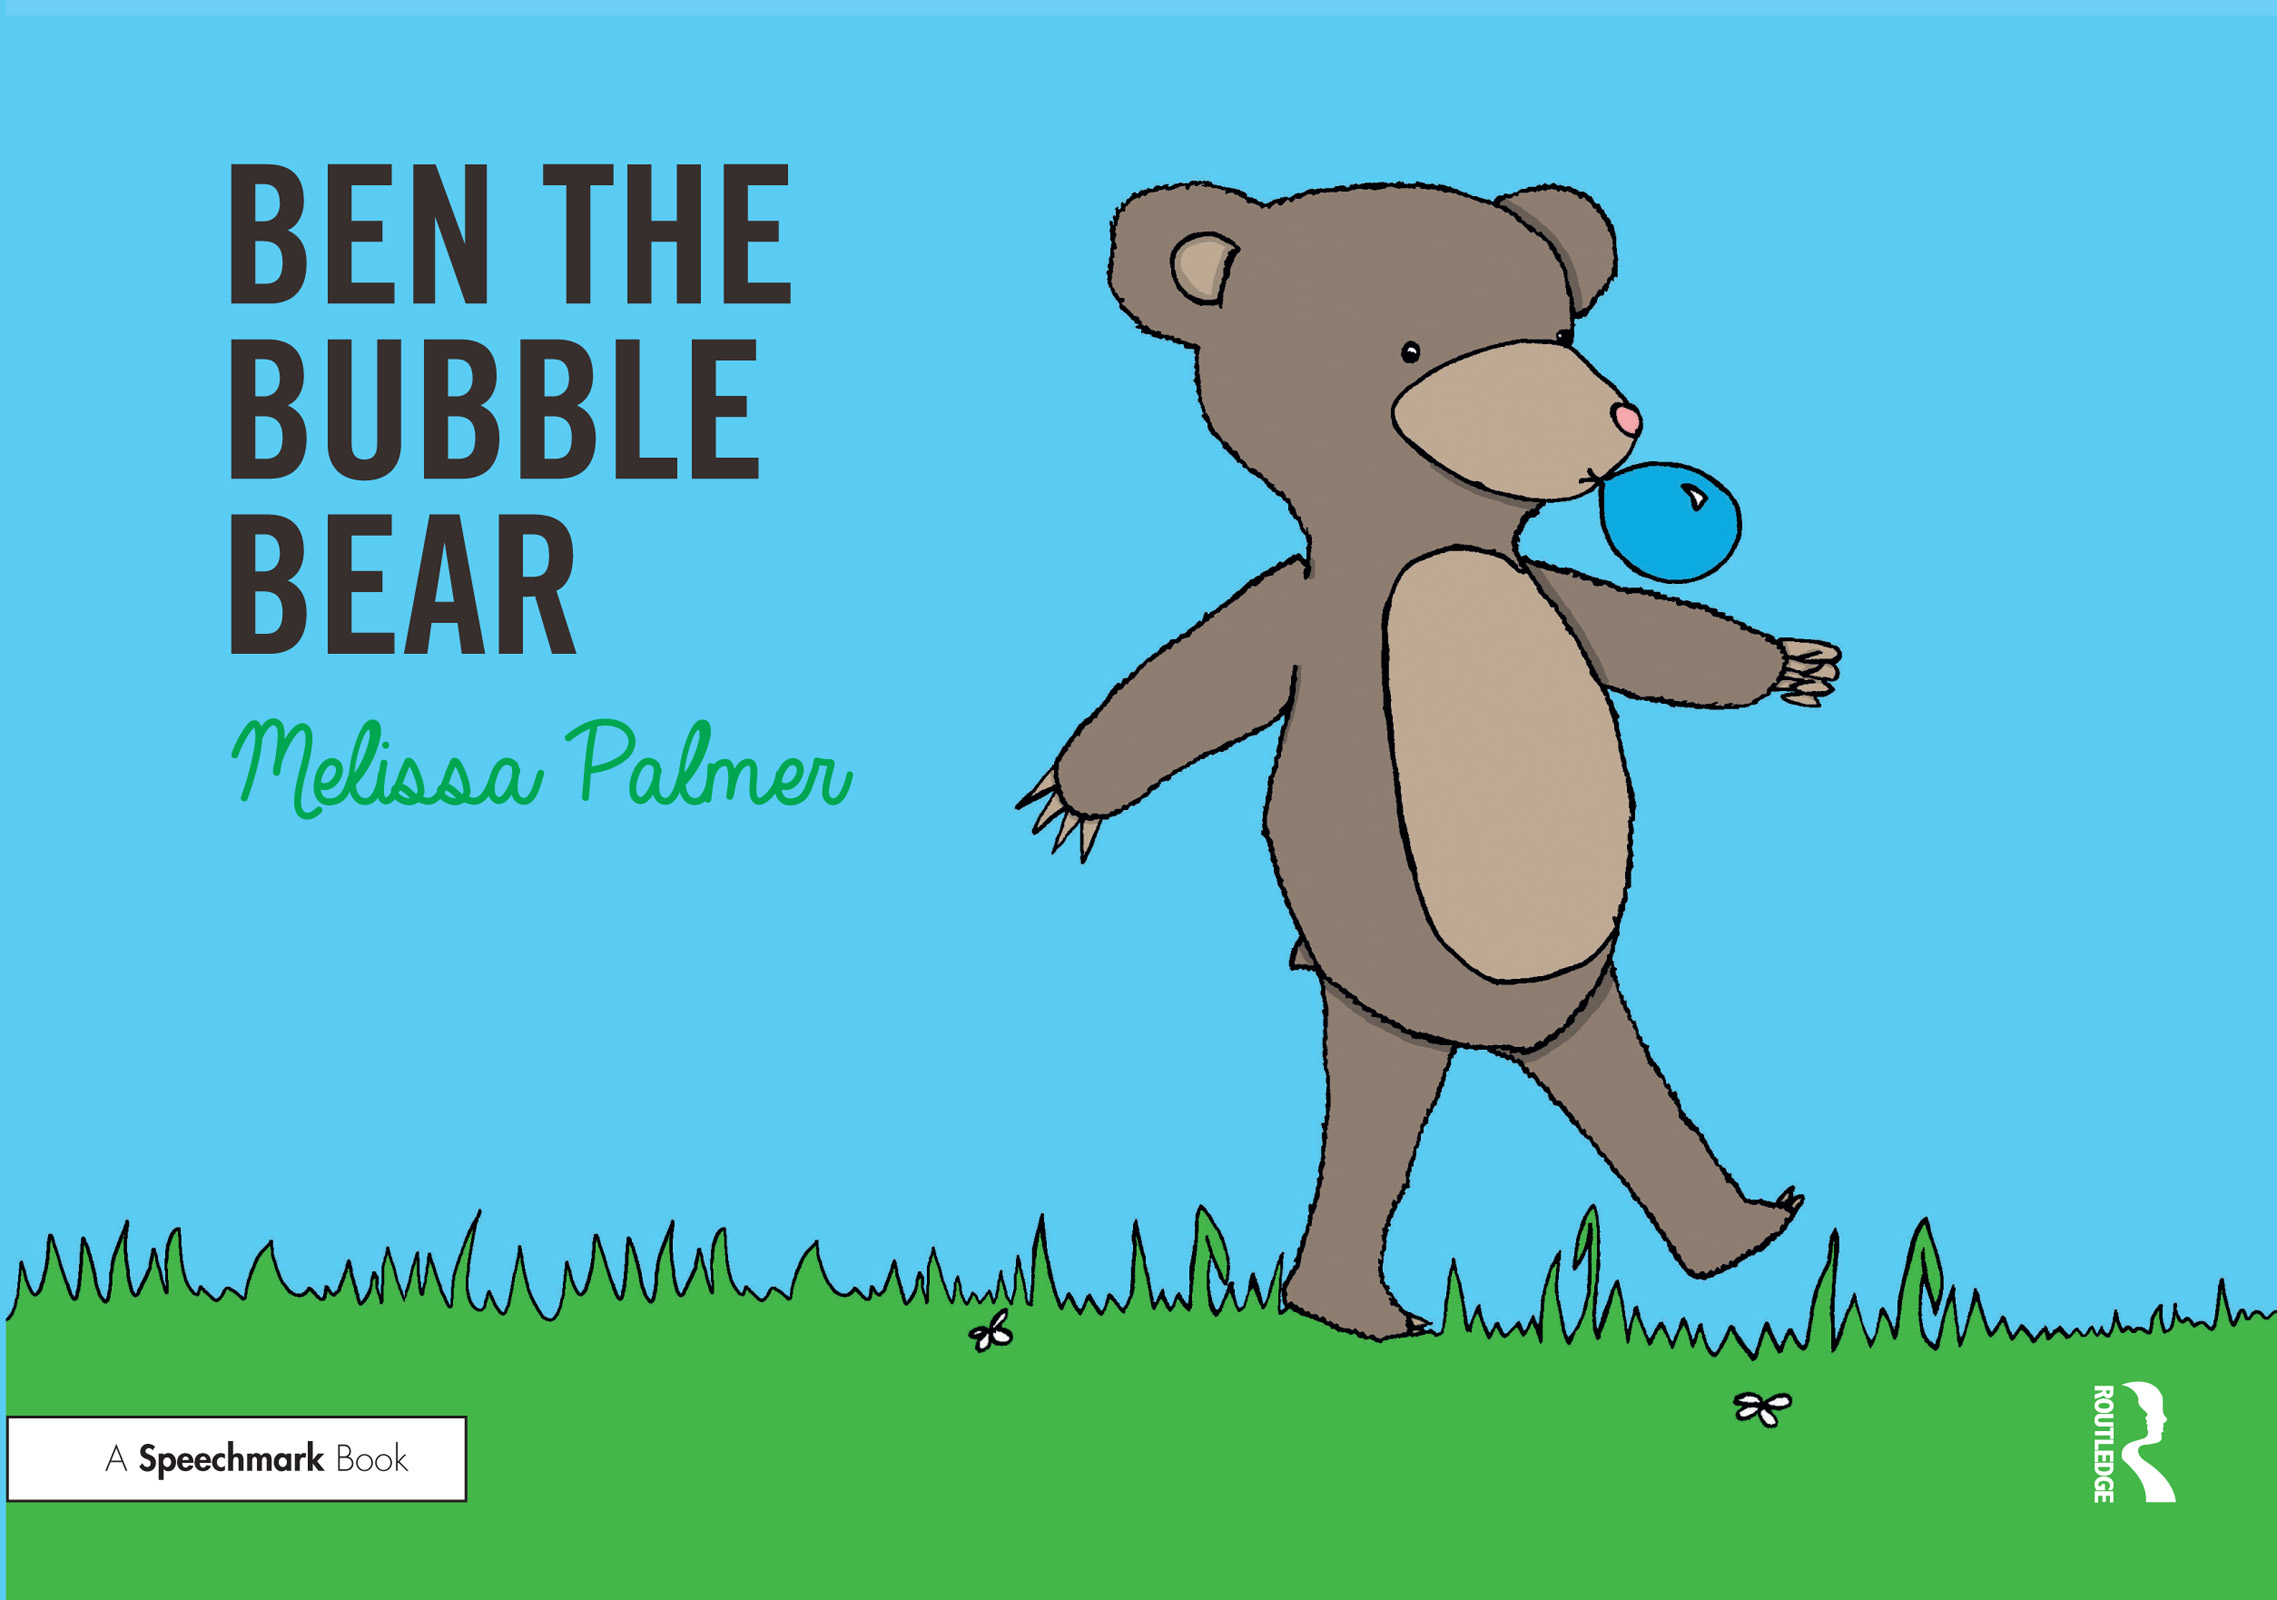 Ben the Bubble Bear book cover